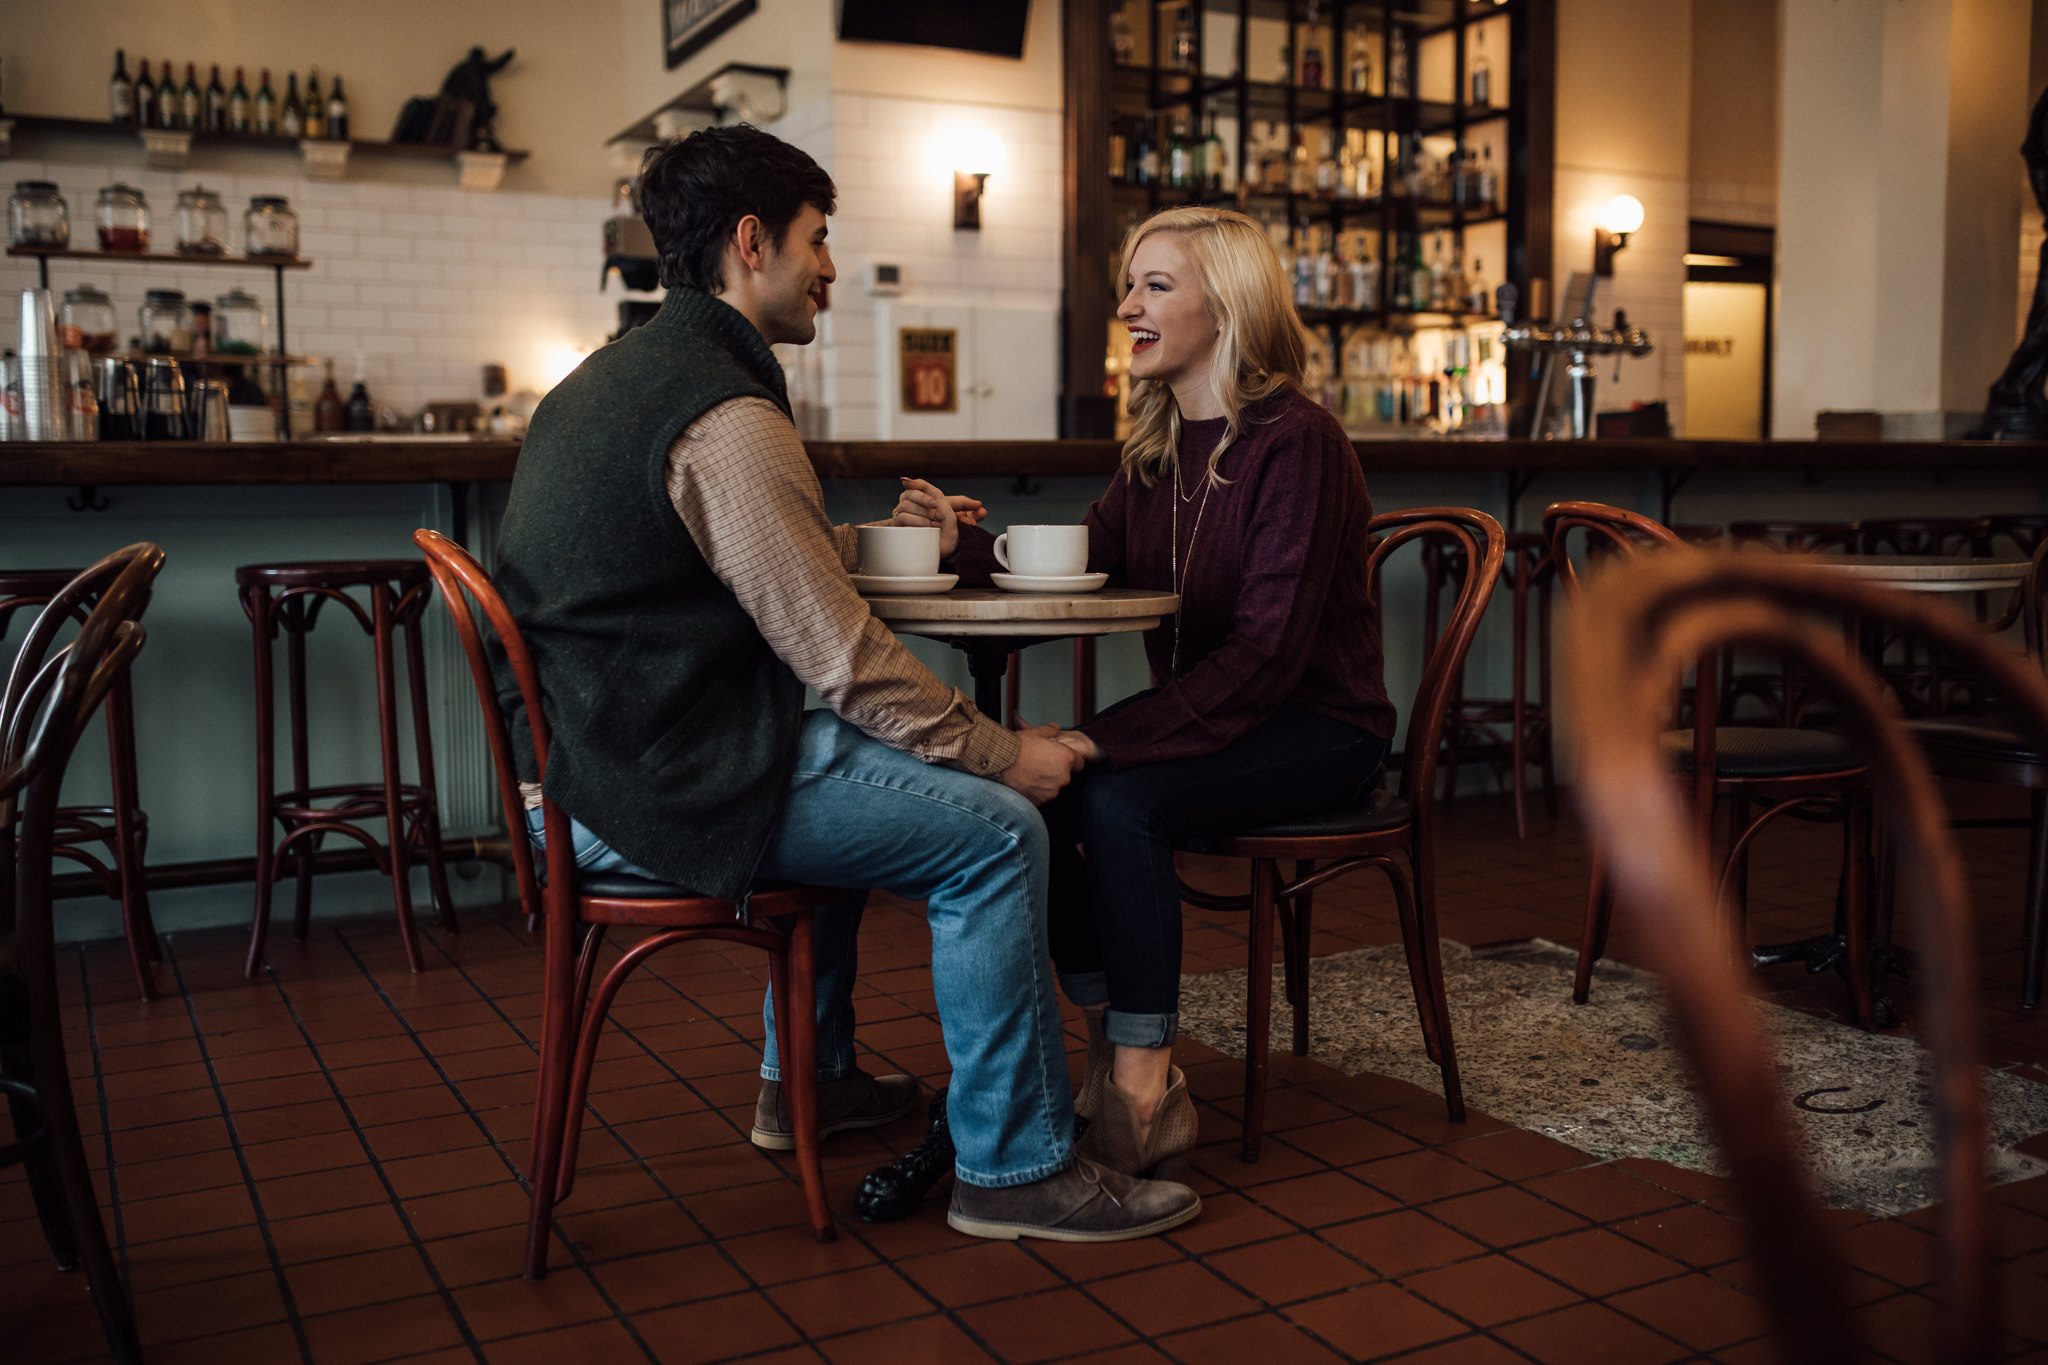 memphis-wedding-photographer-cassie-cook-photography-cafe-keough-engagement-photoshoot-coffee-engagement-11.jpg